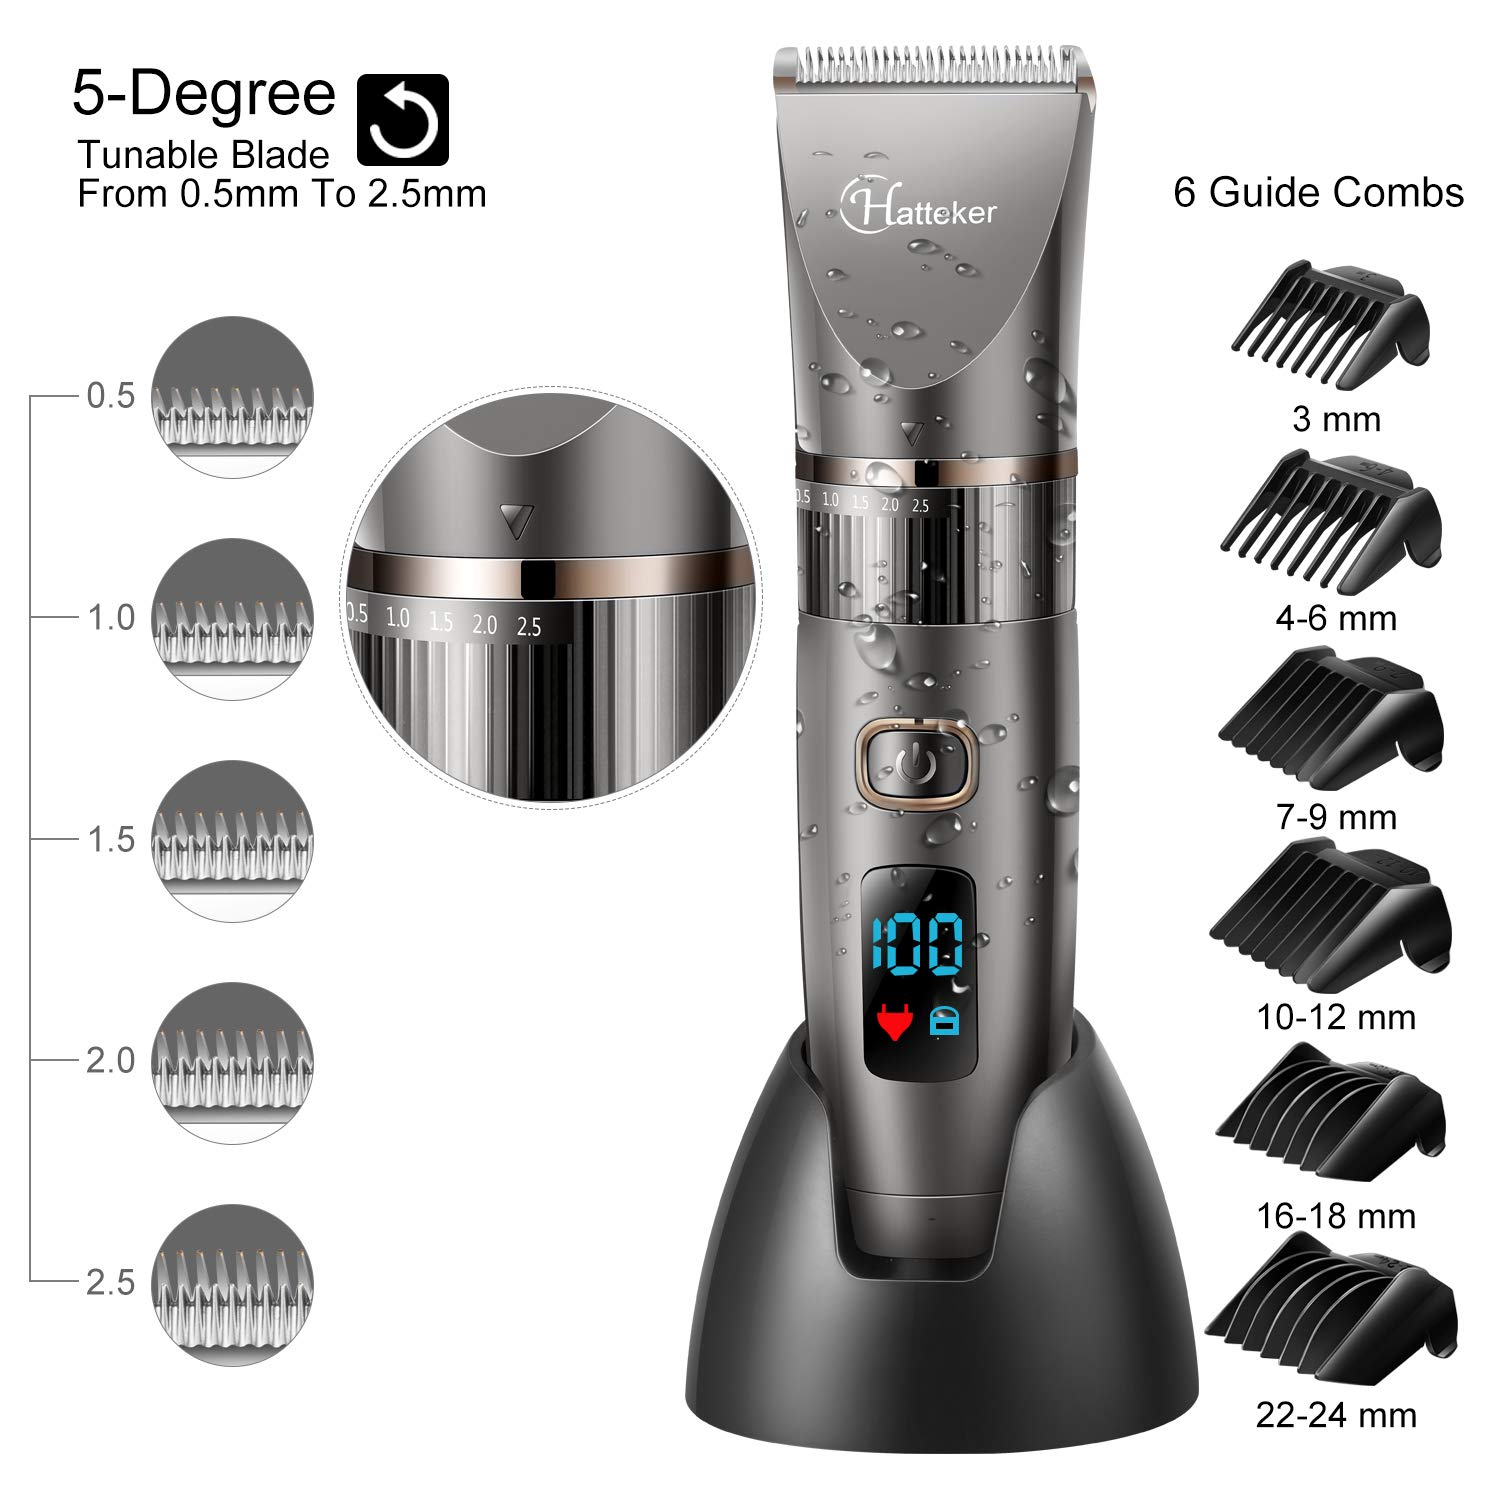 Men's Beard Trimmer & Hair Cutting Kit, Cordless Waterproof Multi-Functional Grooming Kit